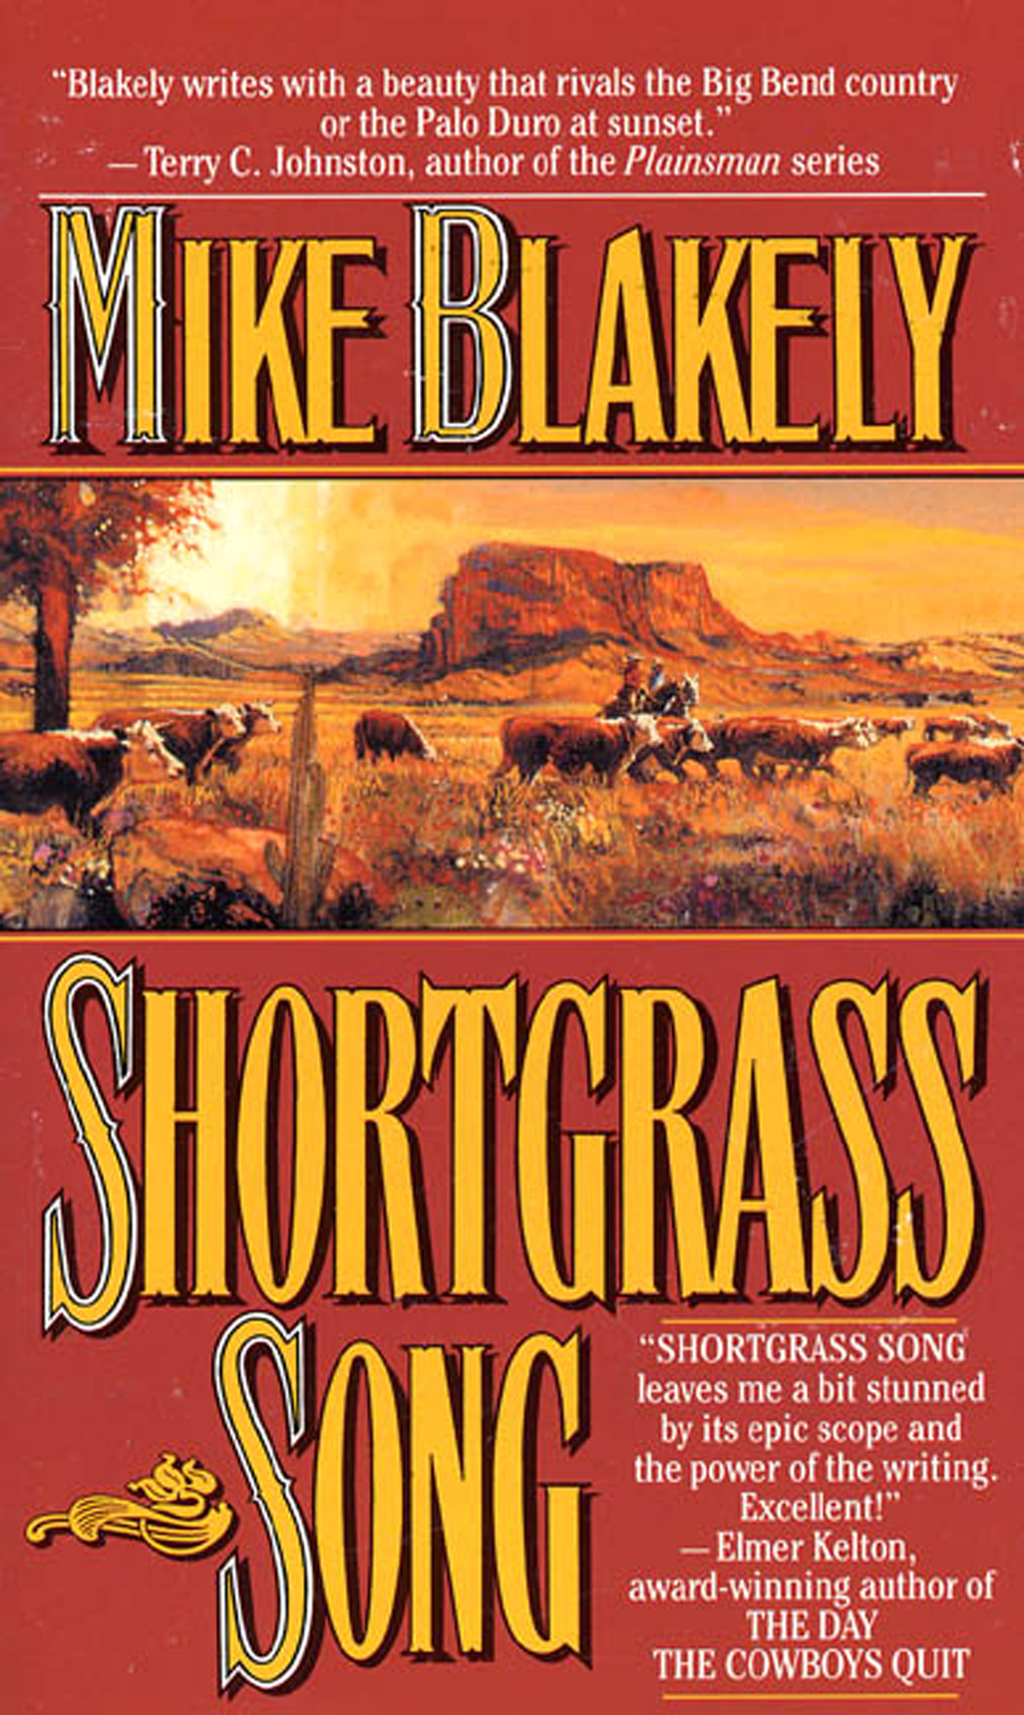 Shortgrass Song